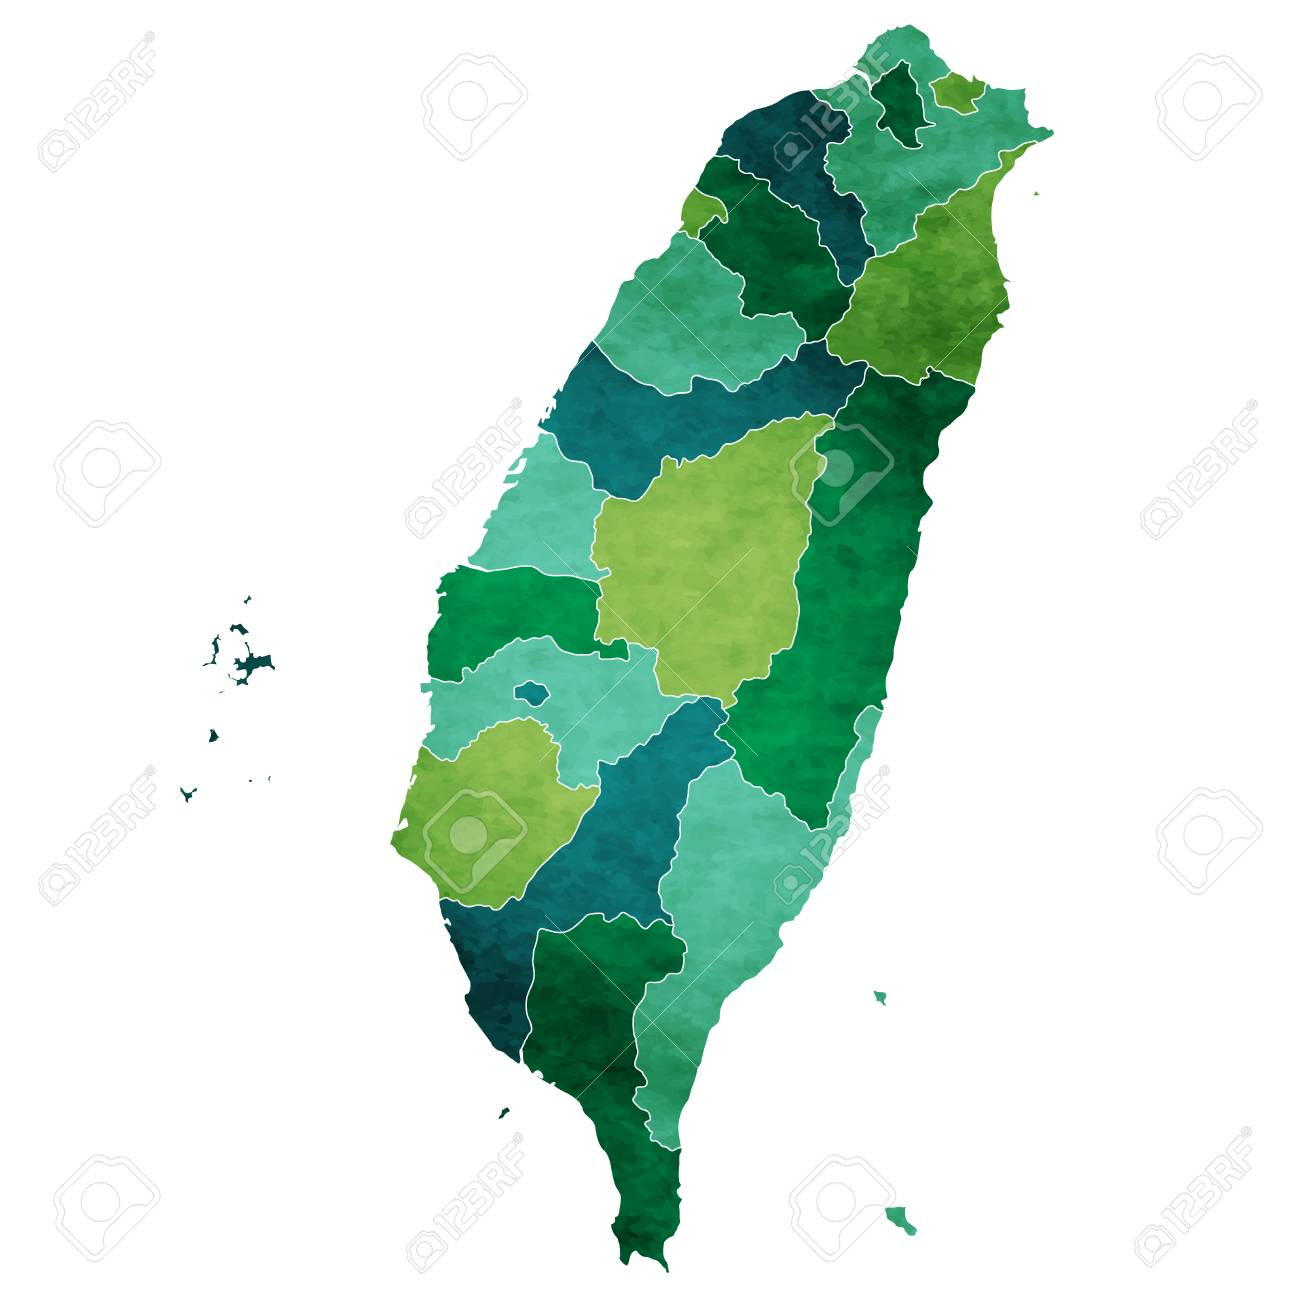 Taiwan World map country icon - 93838321